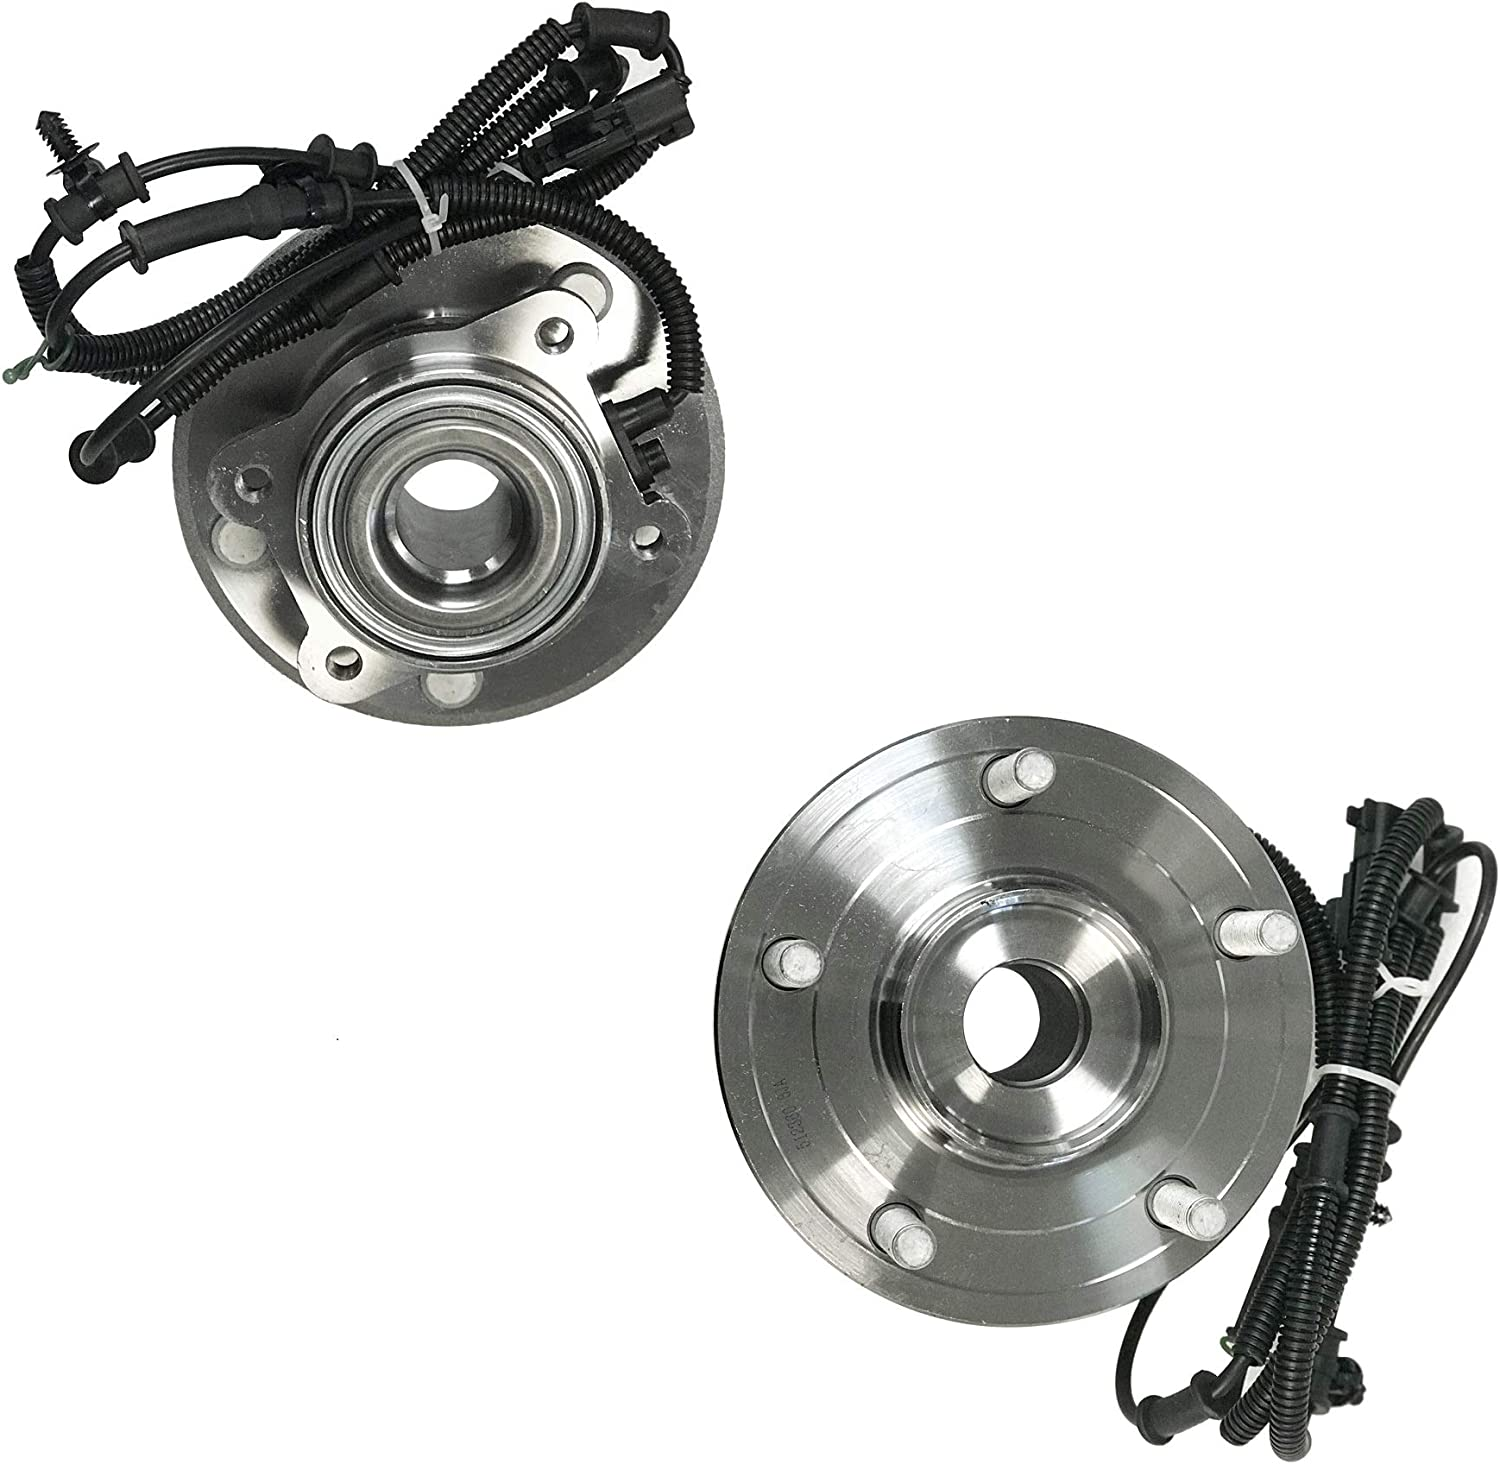 DRIVESTAR 512360 Rear Wheel Hub & Bearing Assembly for Chry Town & Country/Dodge 08 09 10 11 12 Grand Caravan, 09-12 Volkswagen Routan w/ABS(Pair)